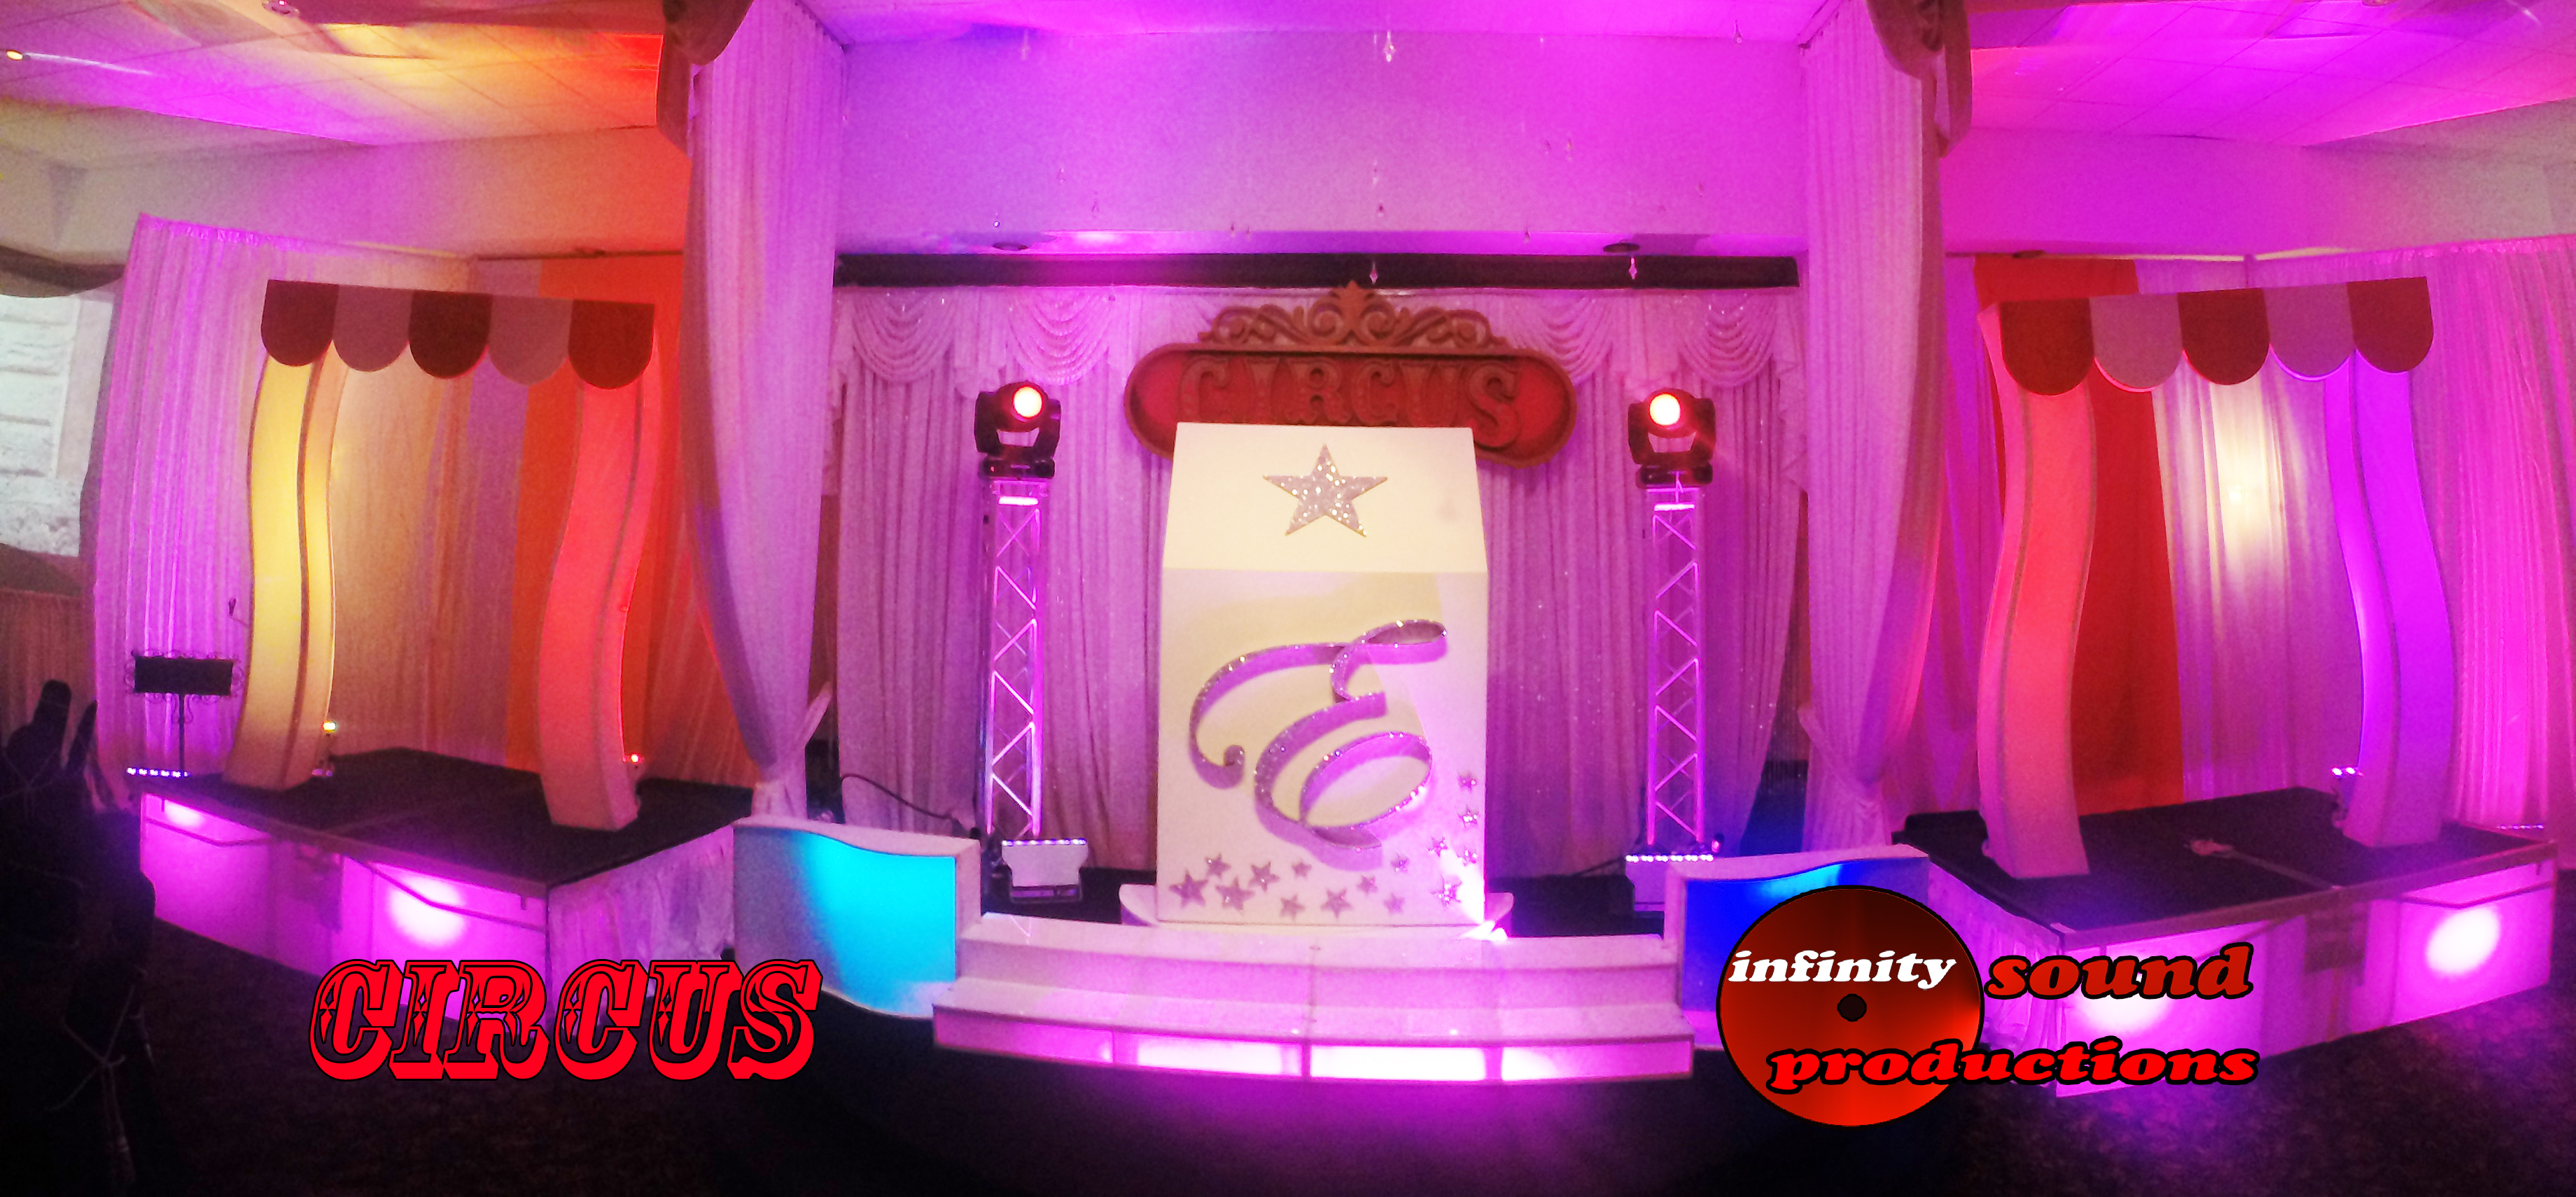 Stages & Decor - Infinity Sound Production